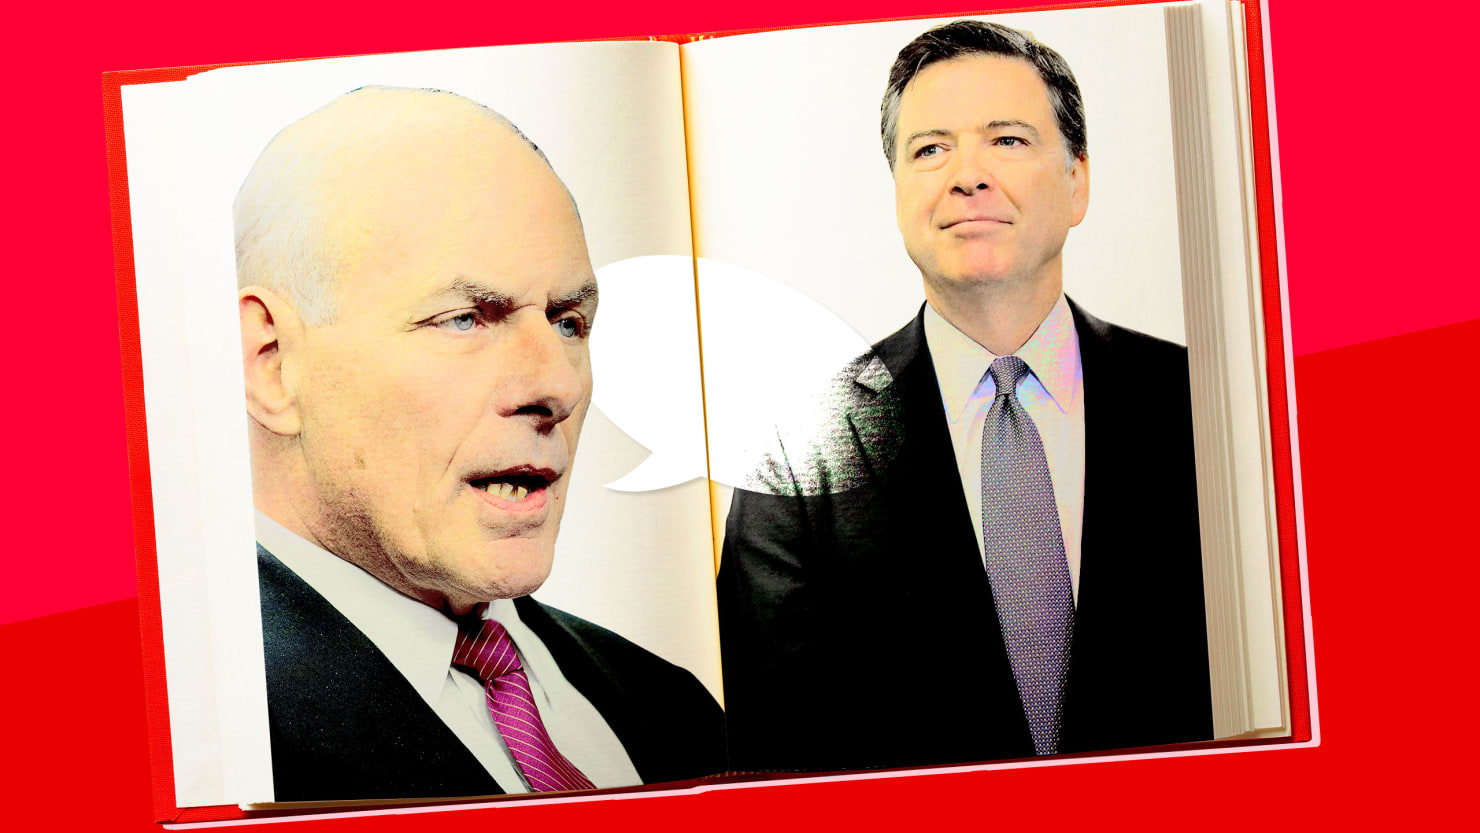 Comey: Kelly called Trump dishonorable for firing me.